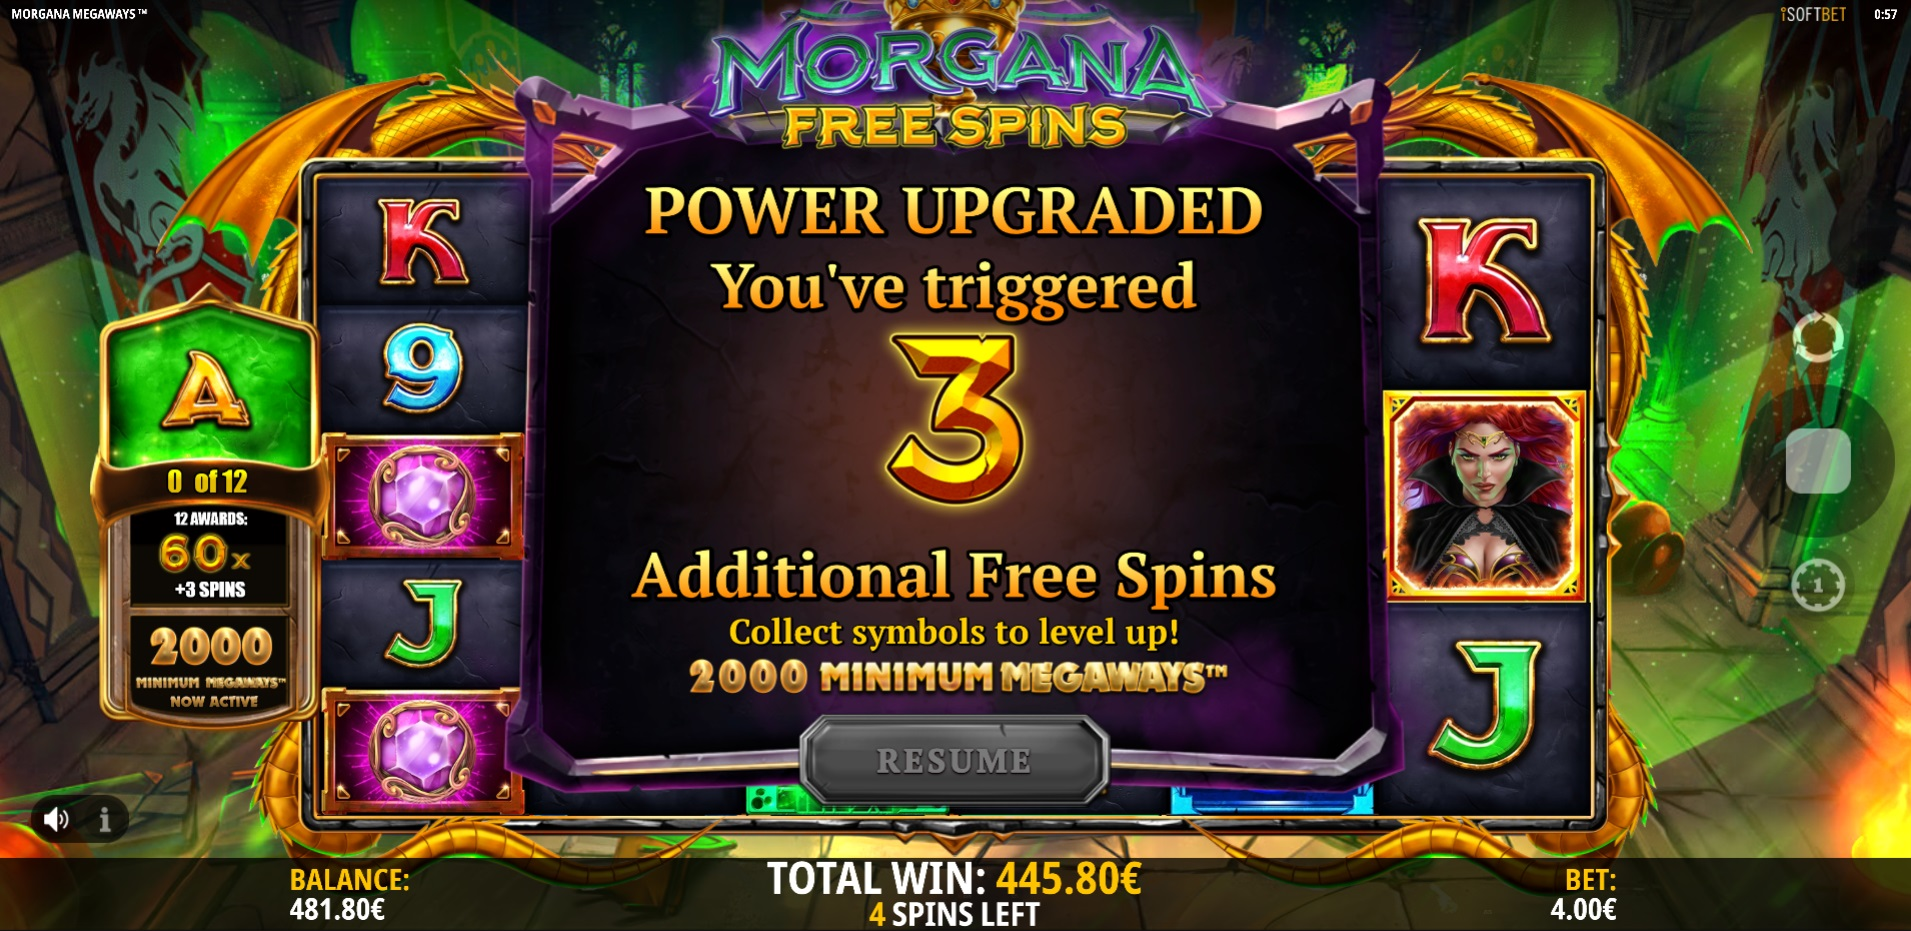 How to Win Big in Morgana Megaways – Morgana Free Spins Upgrade